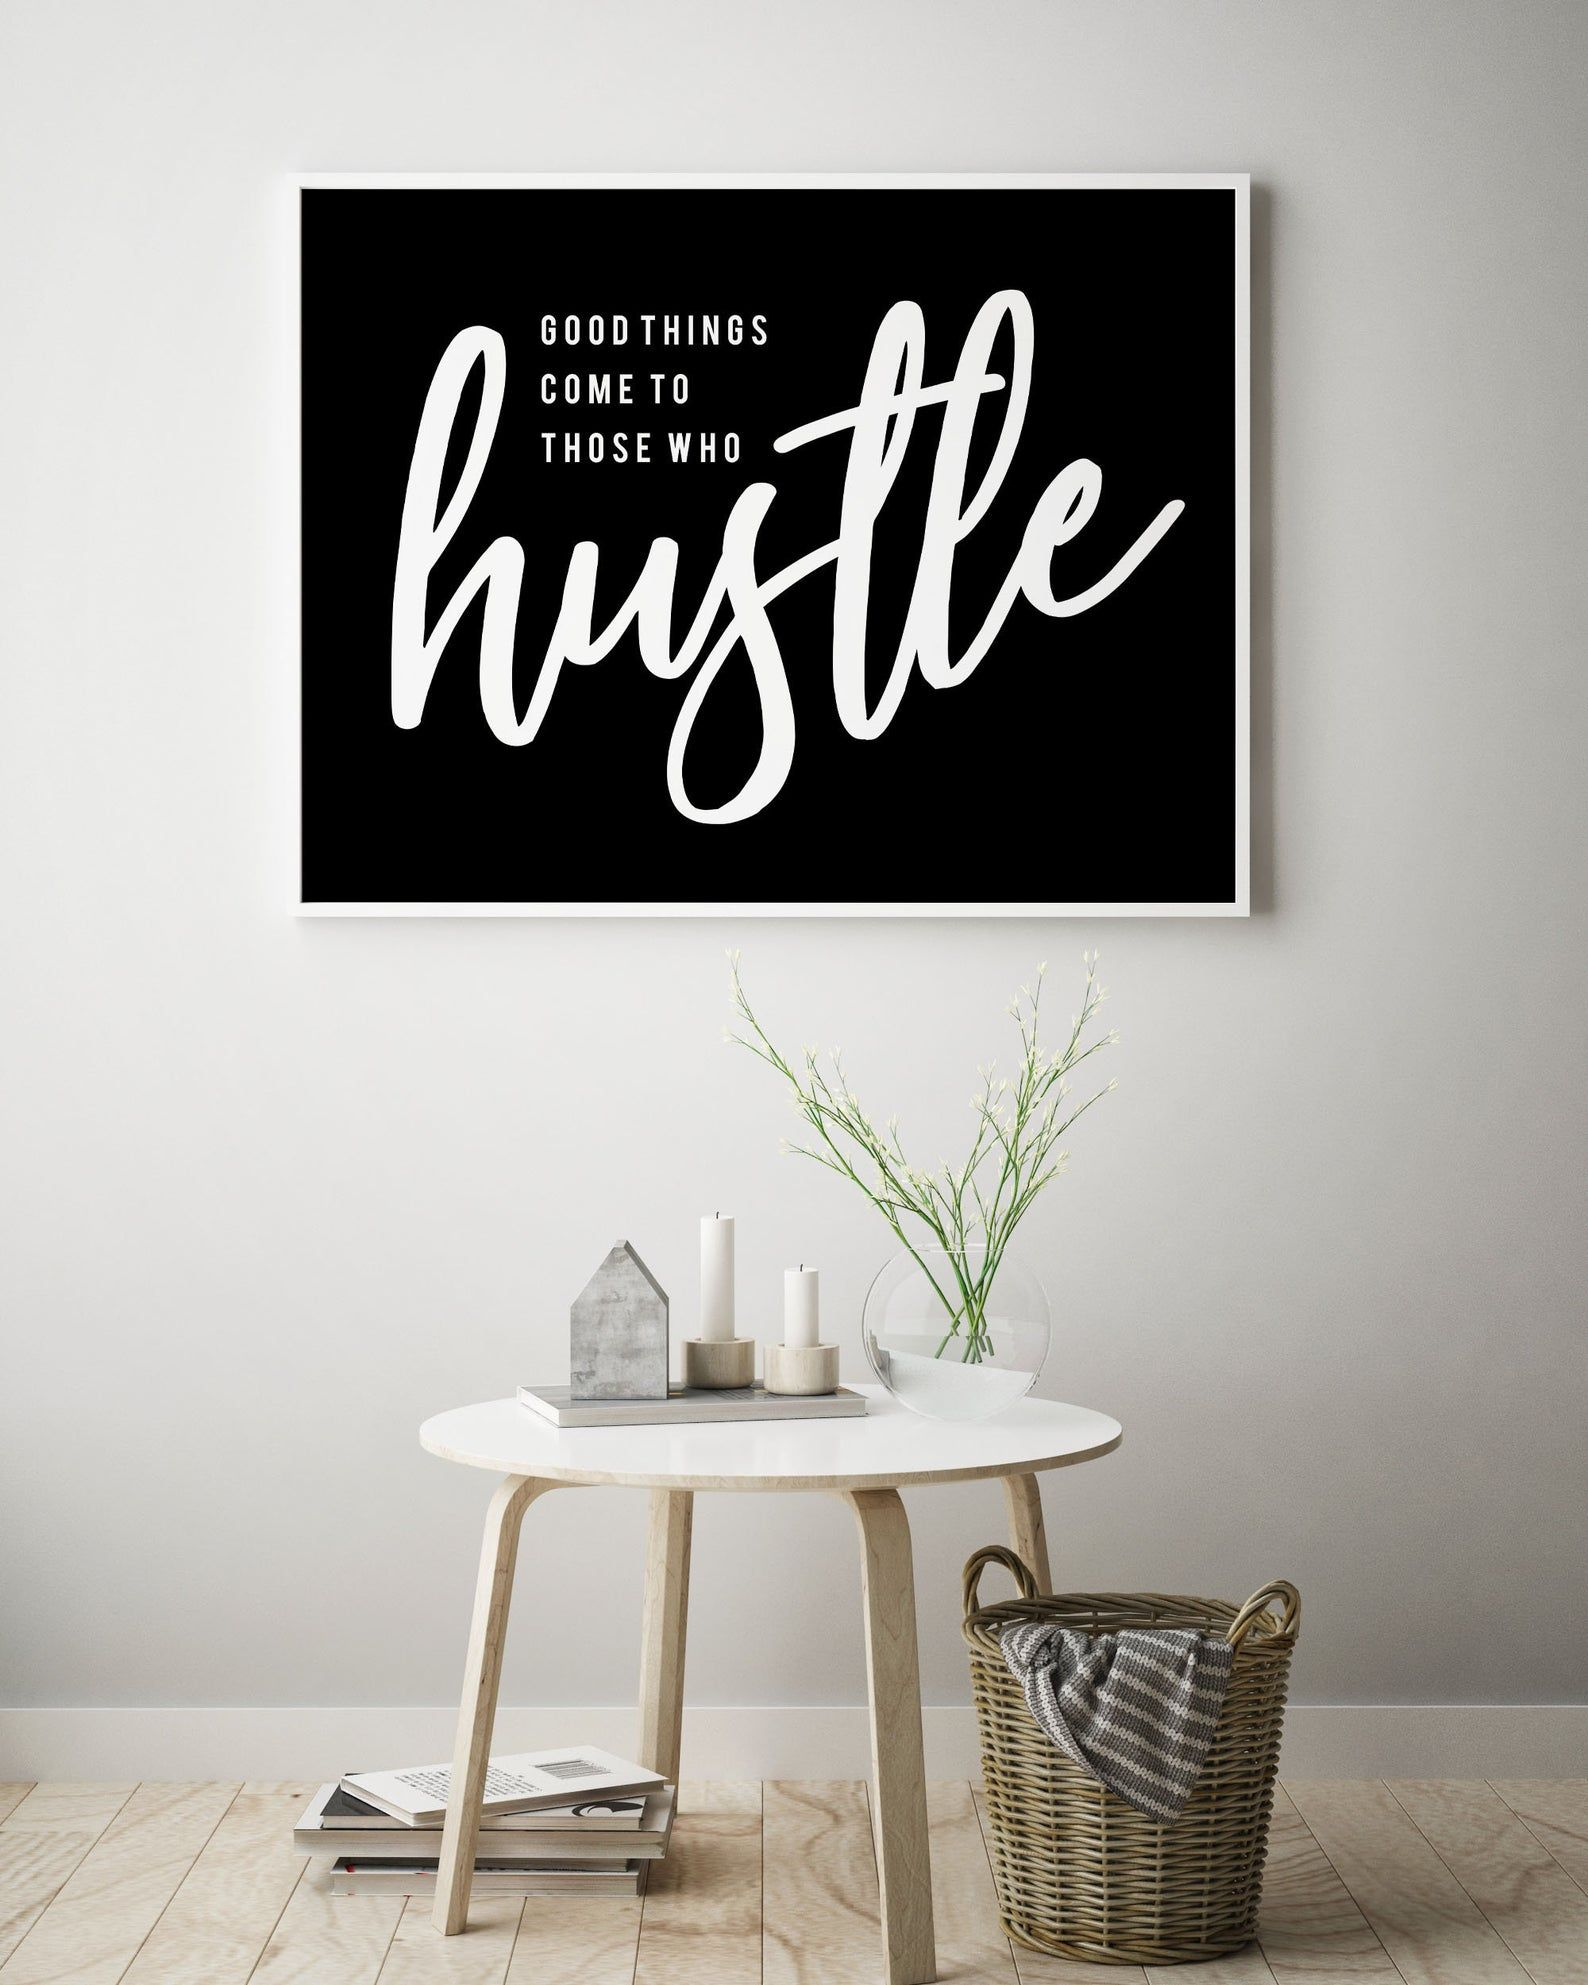 Office Wall Art Hustle Quote Black Typography Poster Etsy In 2020 Office Wall Art Printable Wall Art Quotes Wall Decor Printables